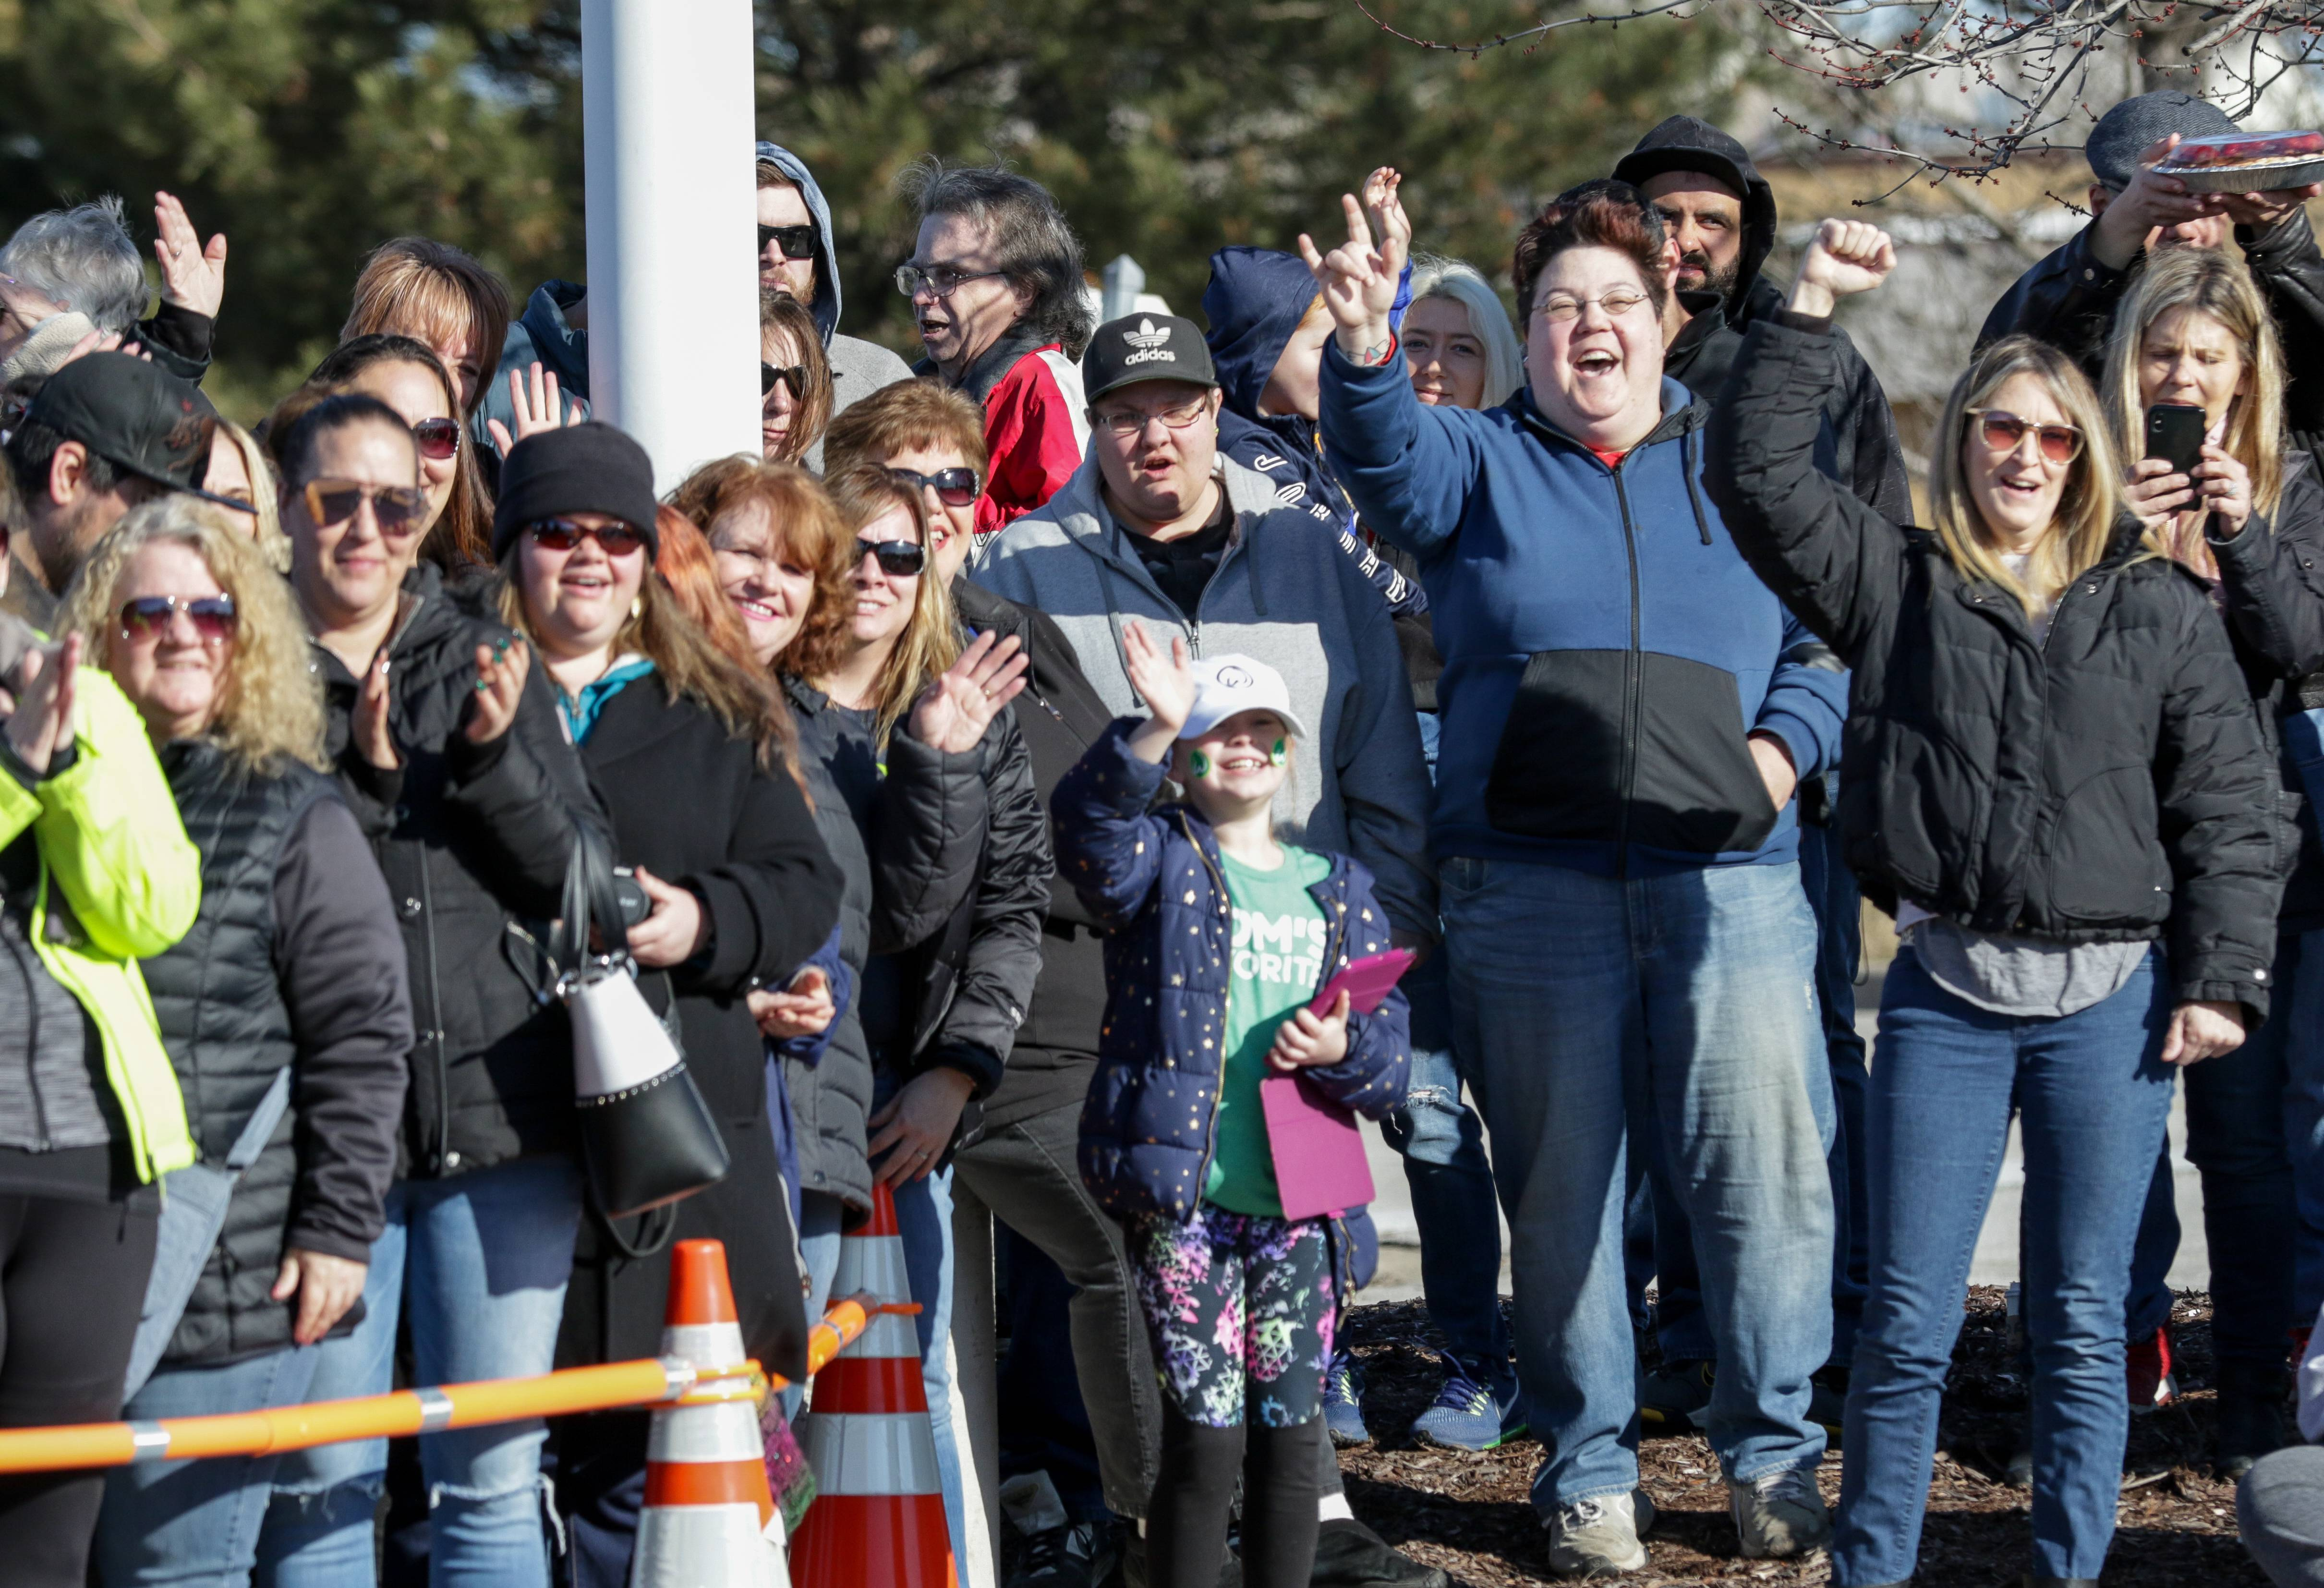 Fans cheer for Donnie Wahlberg at the groundbreaking of the new Wahlburgers restaurant in St. Charles on Friday.